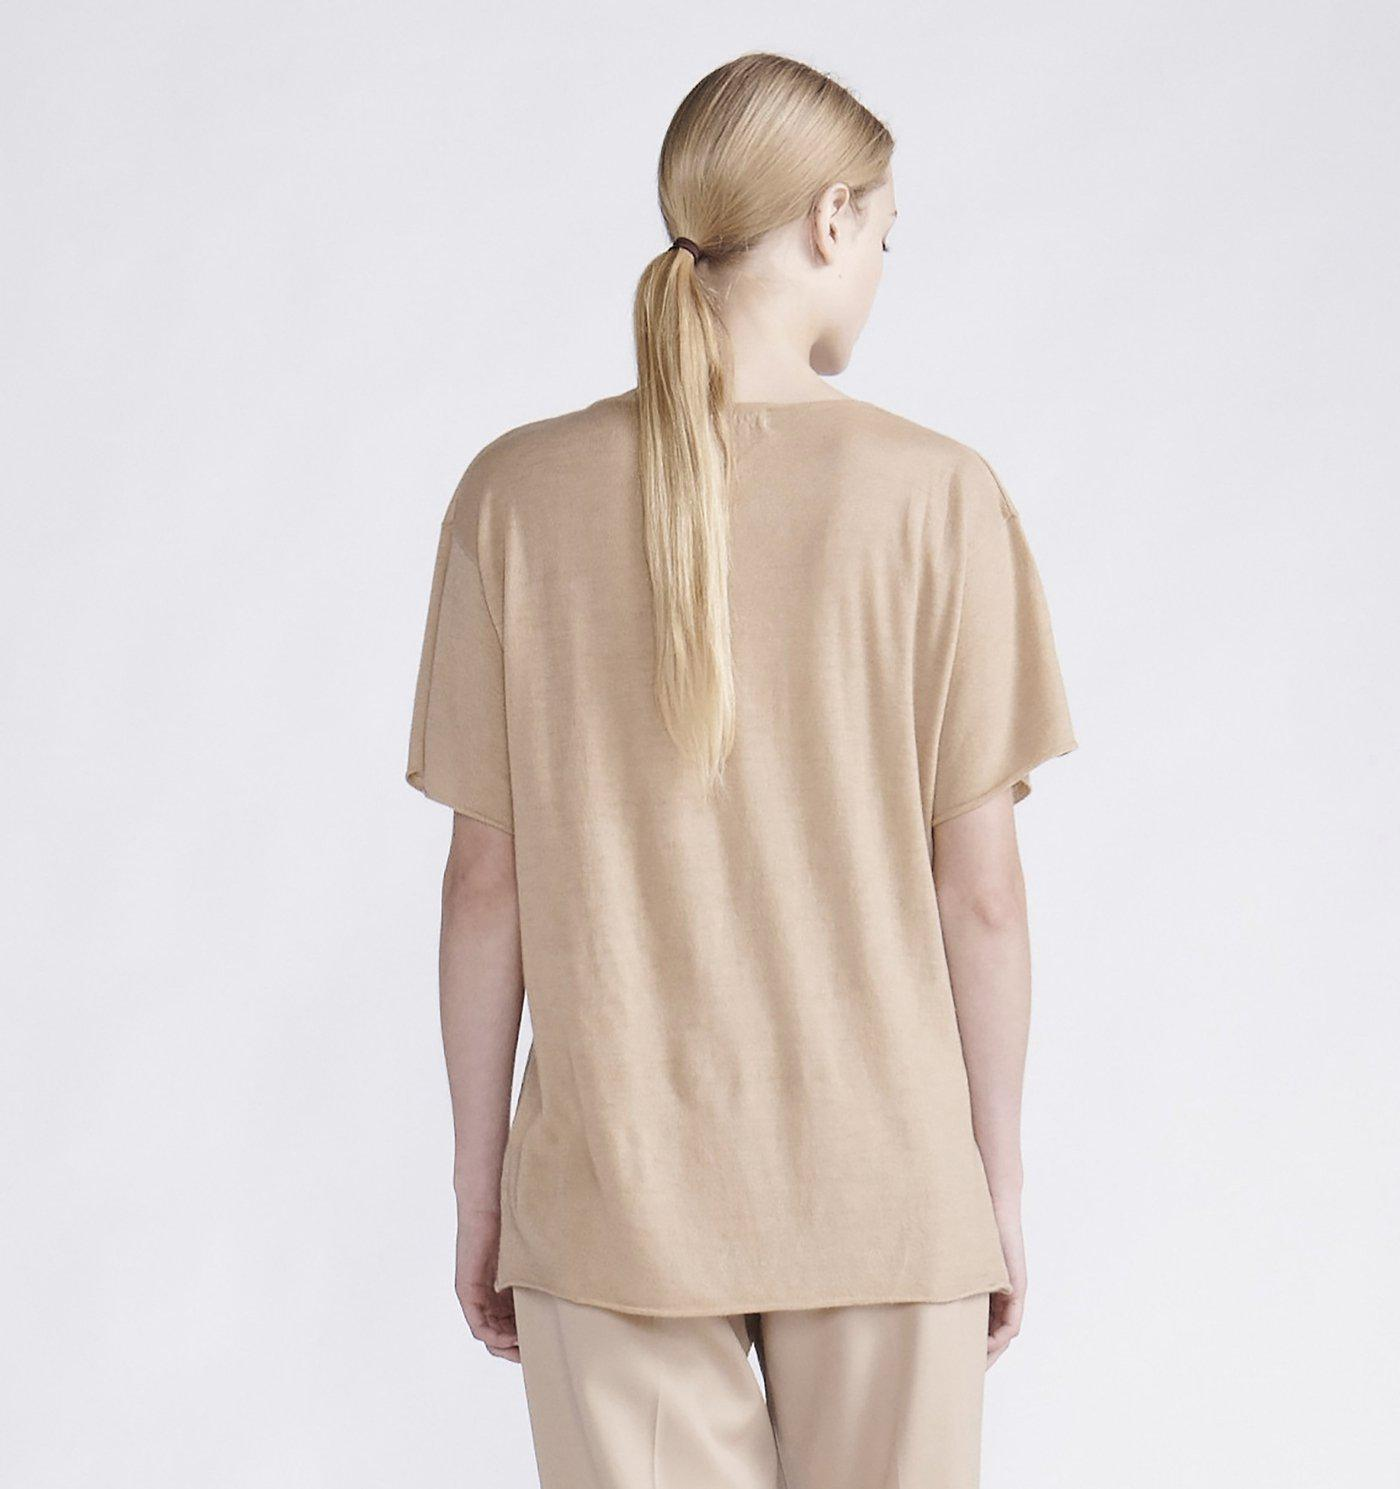 RYAN ROCHE CASHMERE OVERSIZED V NECK T SHIRT